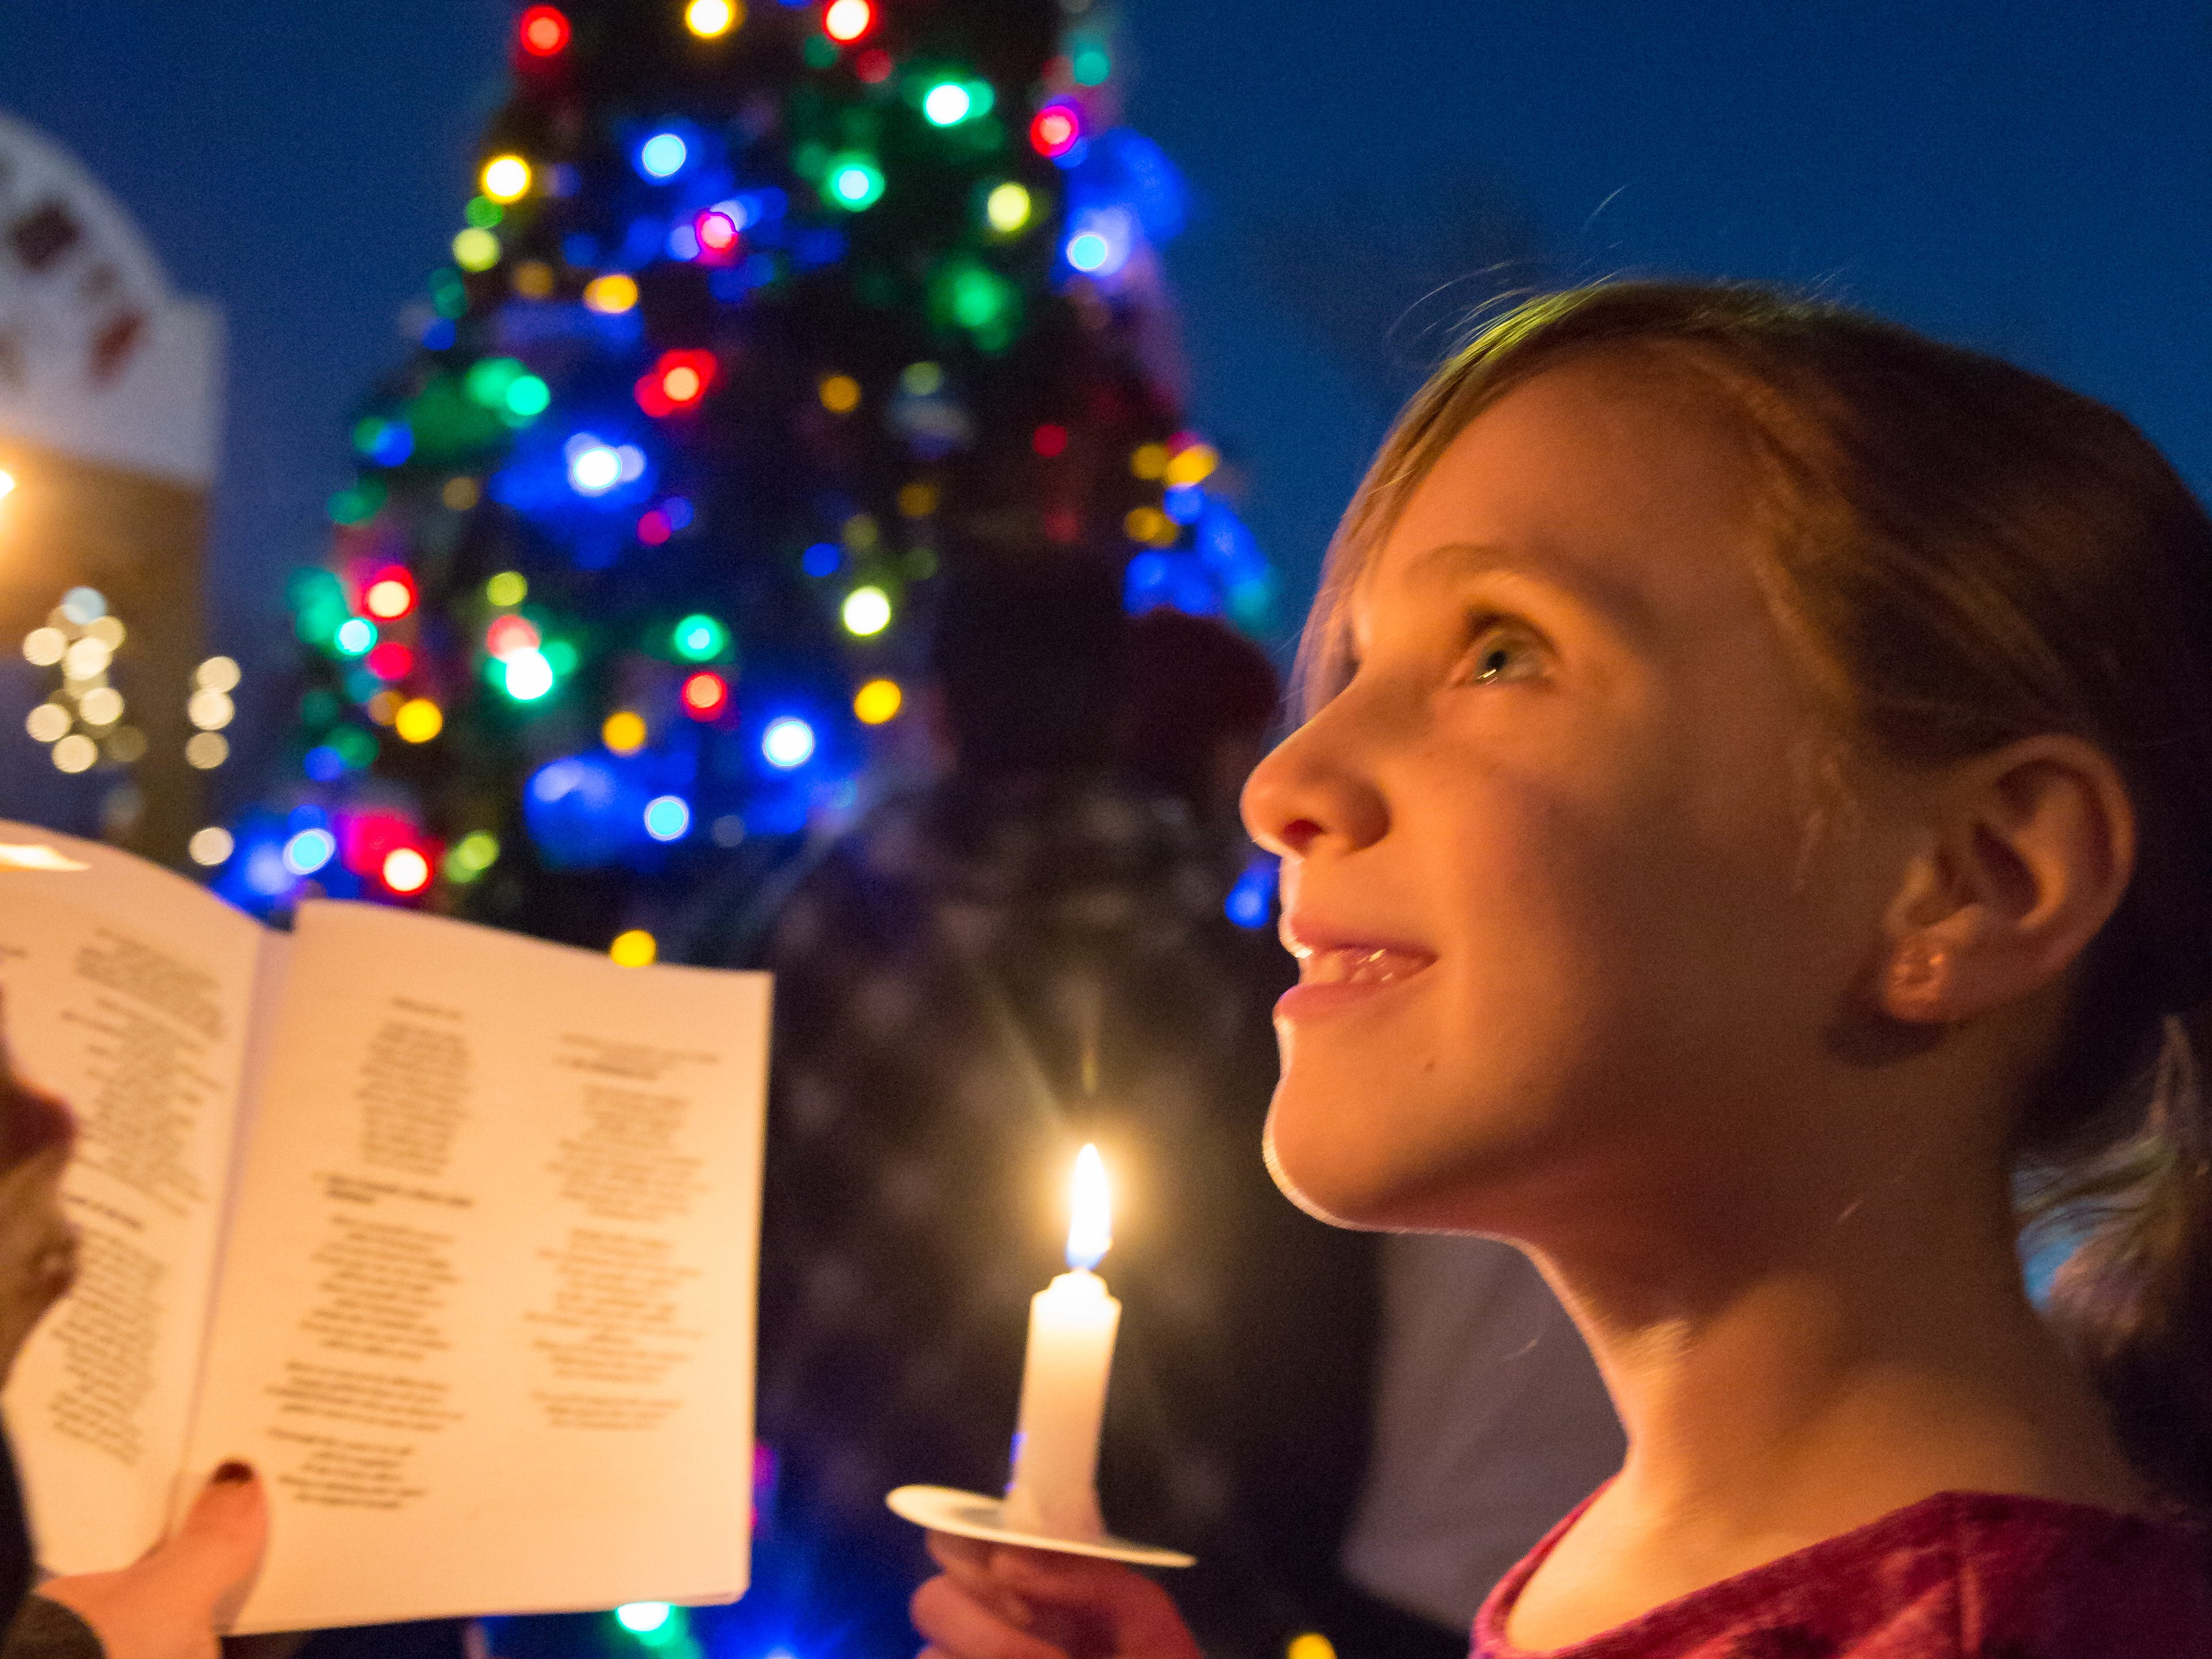 Ana Barela, 7, of Las Cruces, sing carols  at the Mesilla Plaza on Christmas Eve, Monday, Dec. 24, 2018. There were 6,000 luminarias lit by the historic village of Old Mesilla.